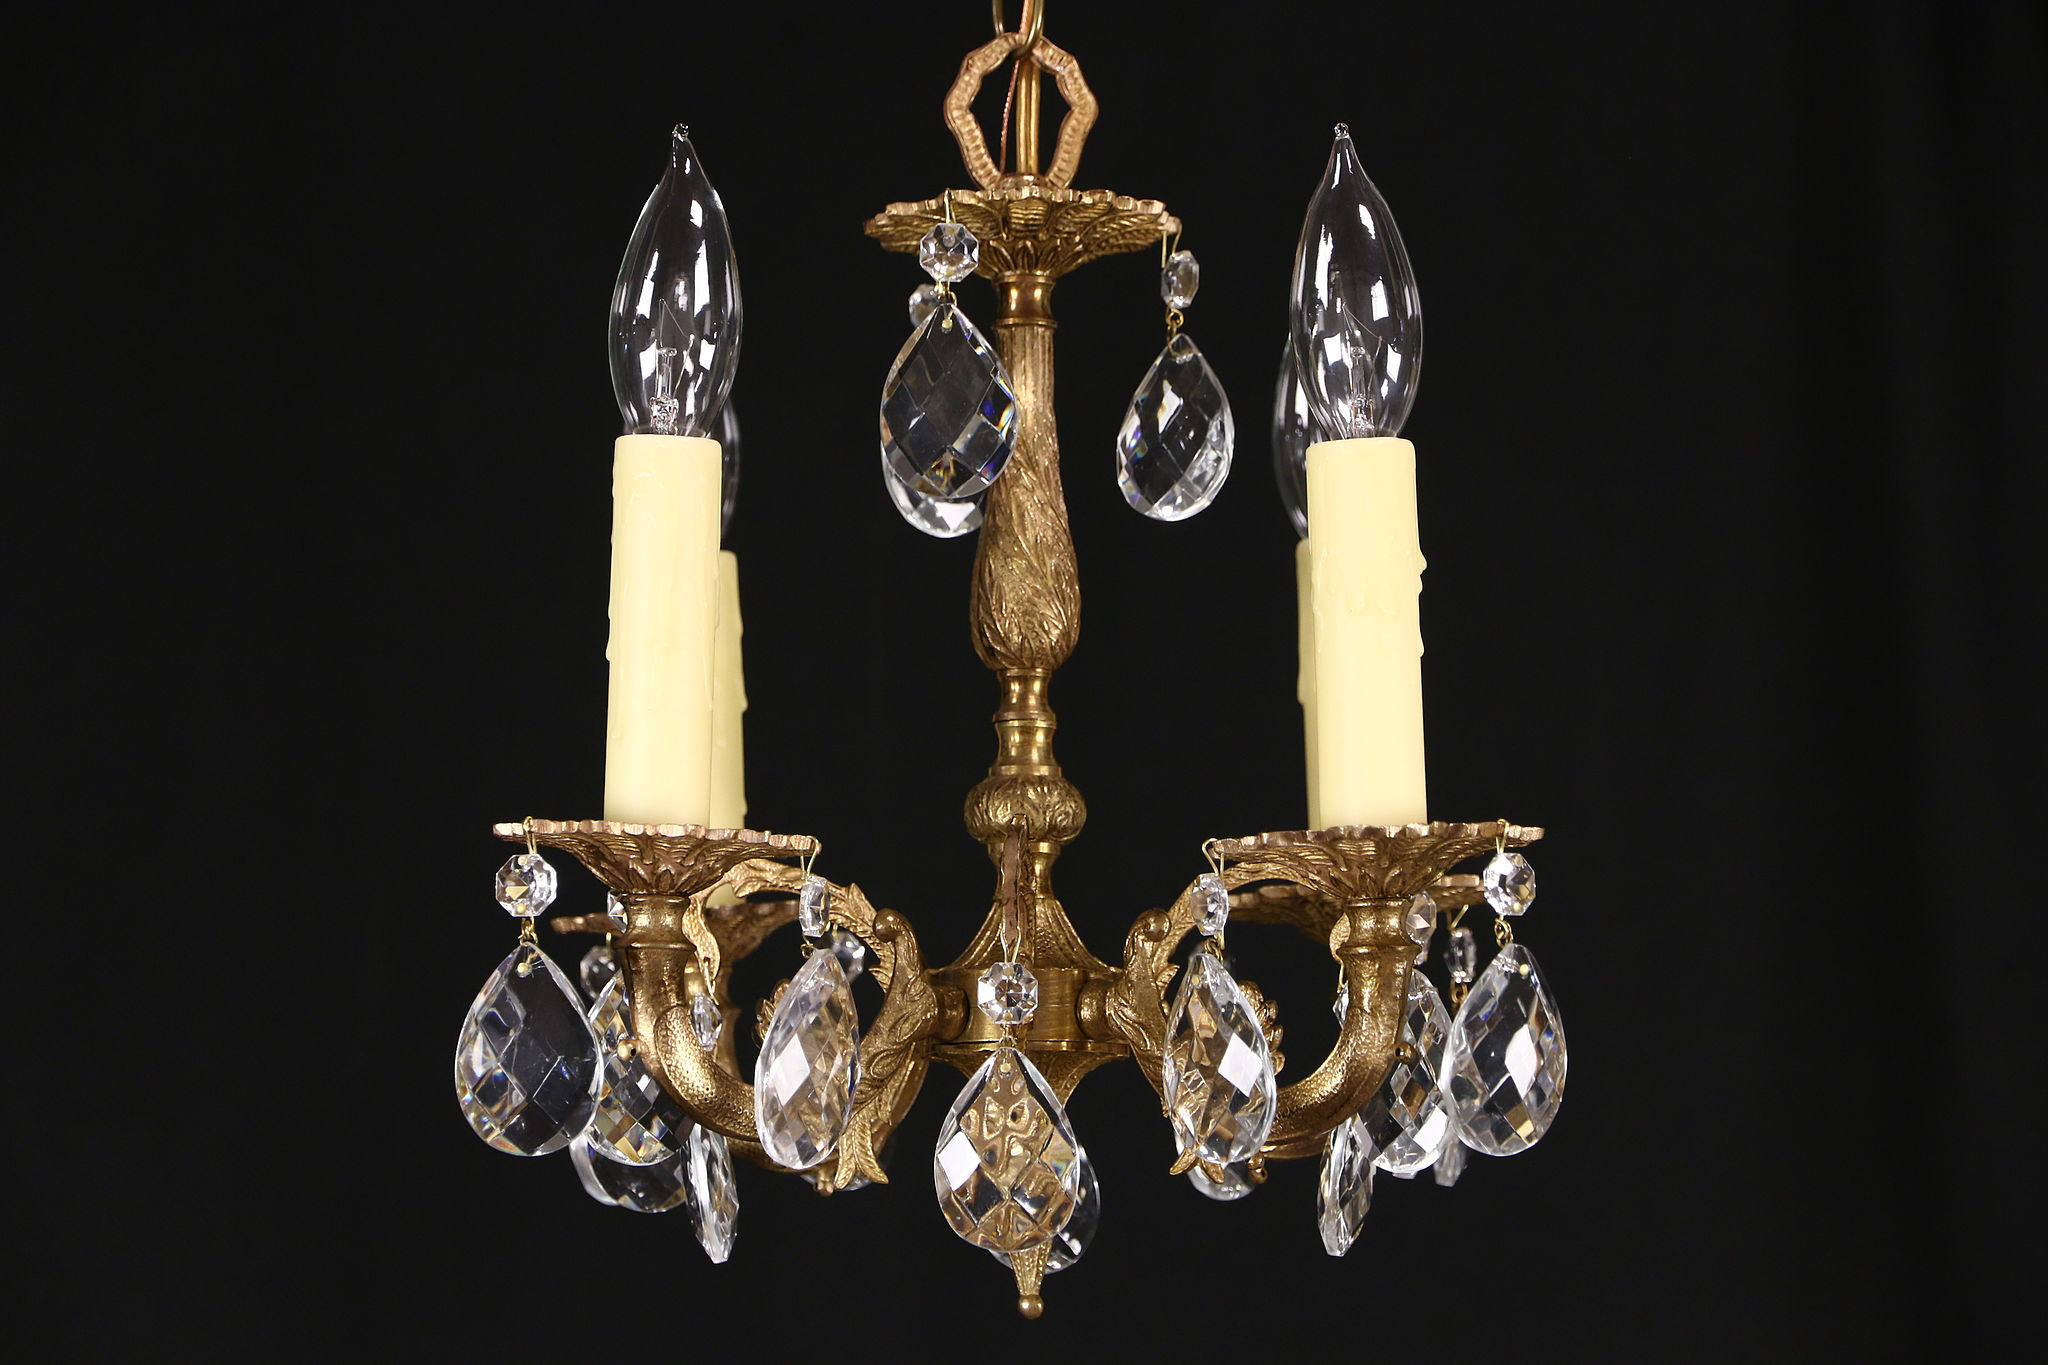 Sold Brass Crystal Vintage Small Chandelier 4 Candles Harp Gallery Antiques Furniture